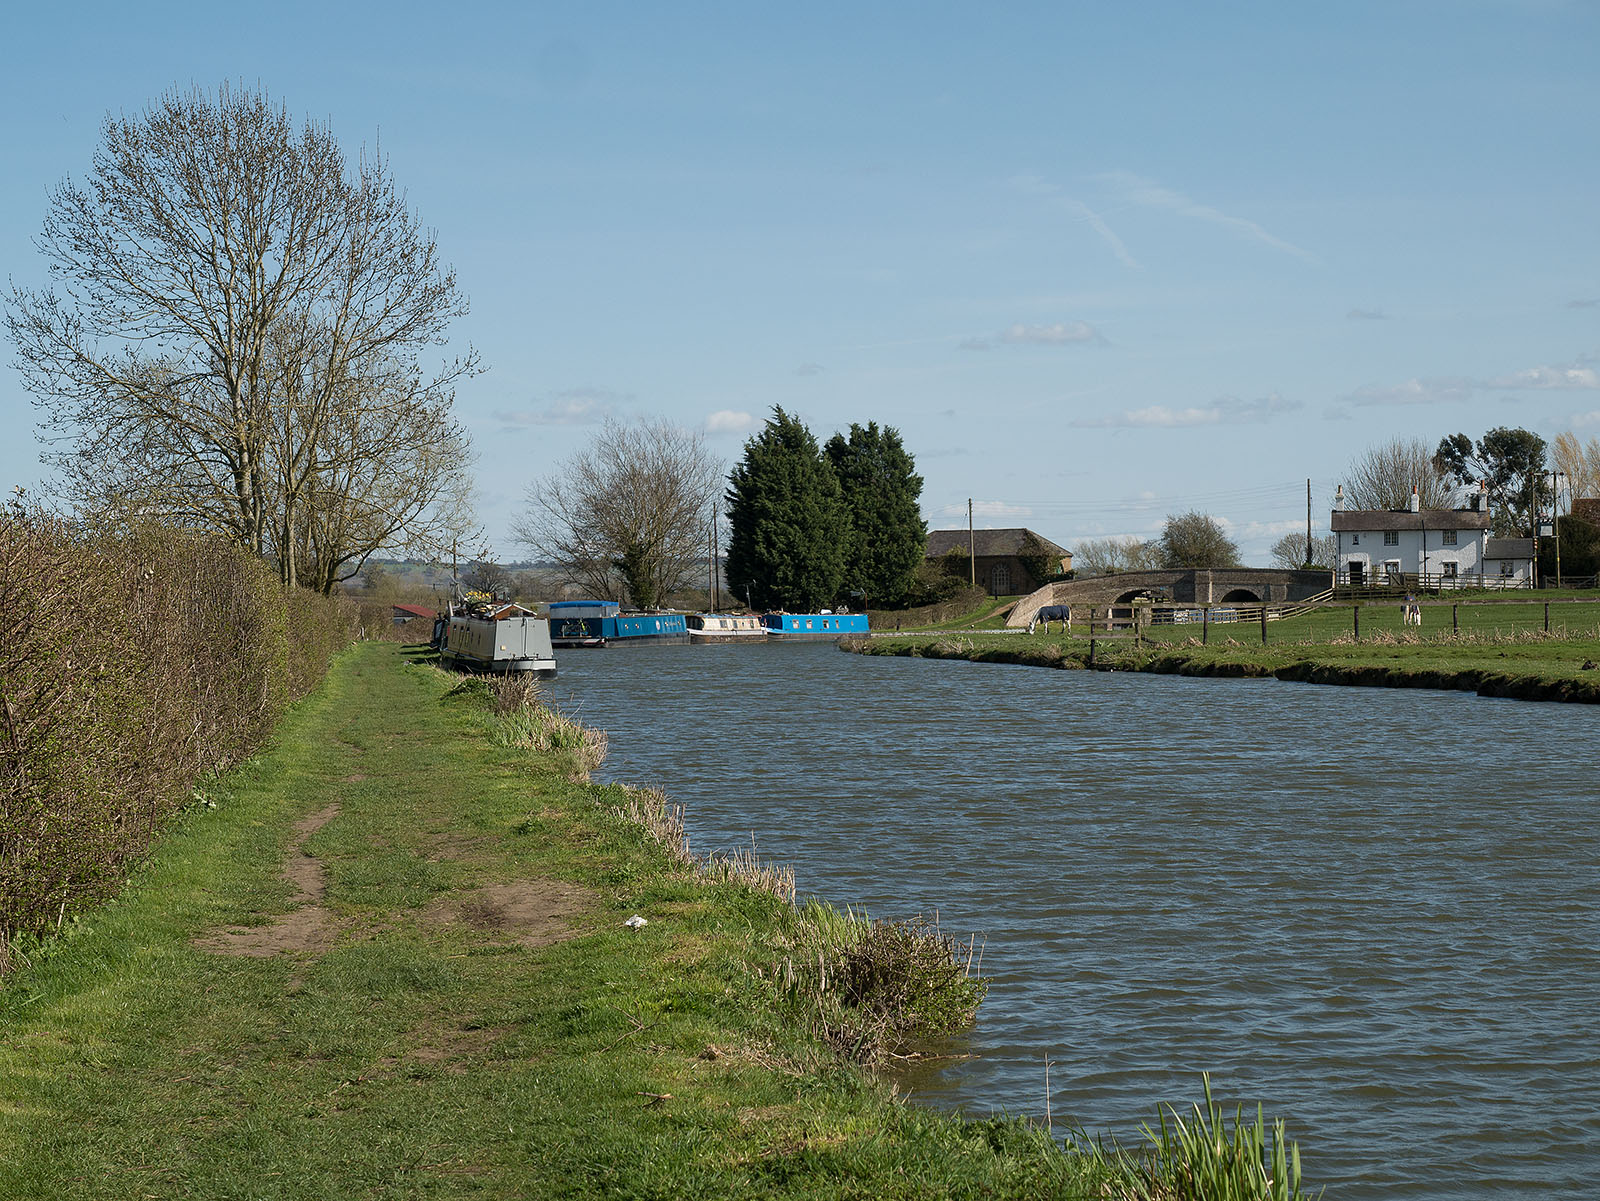 Looking back to Church lock